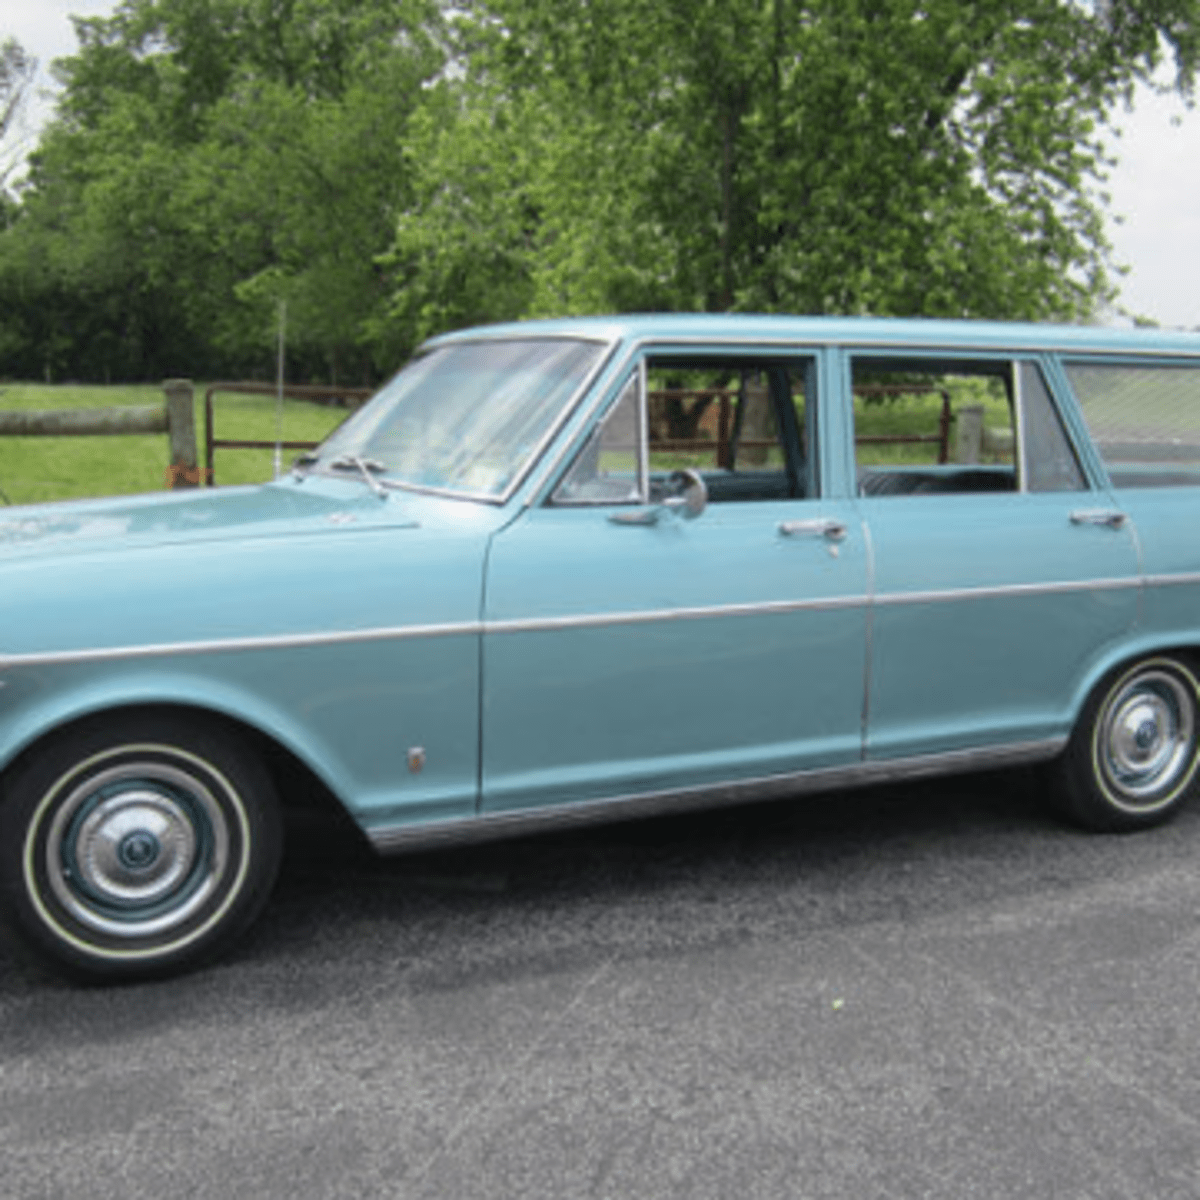 Car Of The Week 1962 Chevrolet Nova Station Wagon Old Cars Weekly